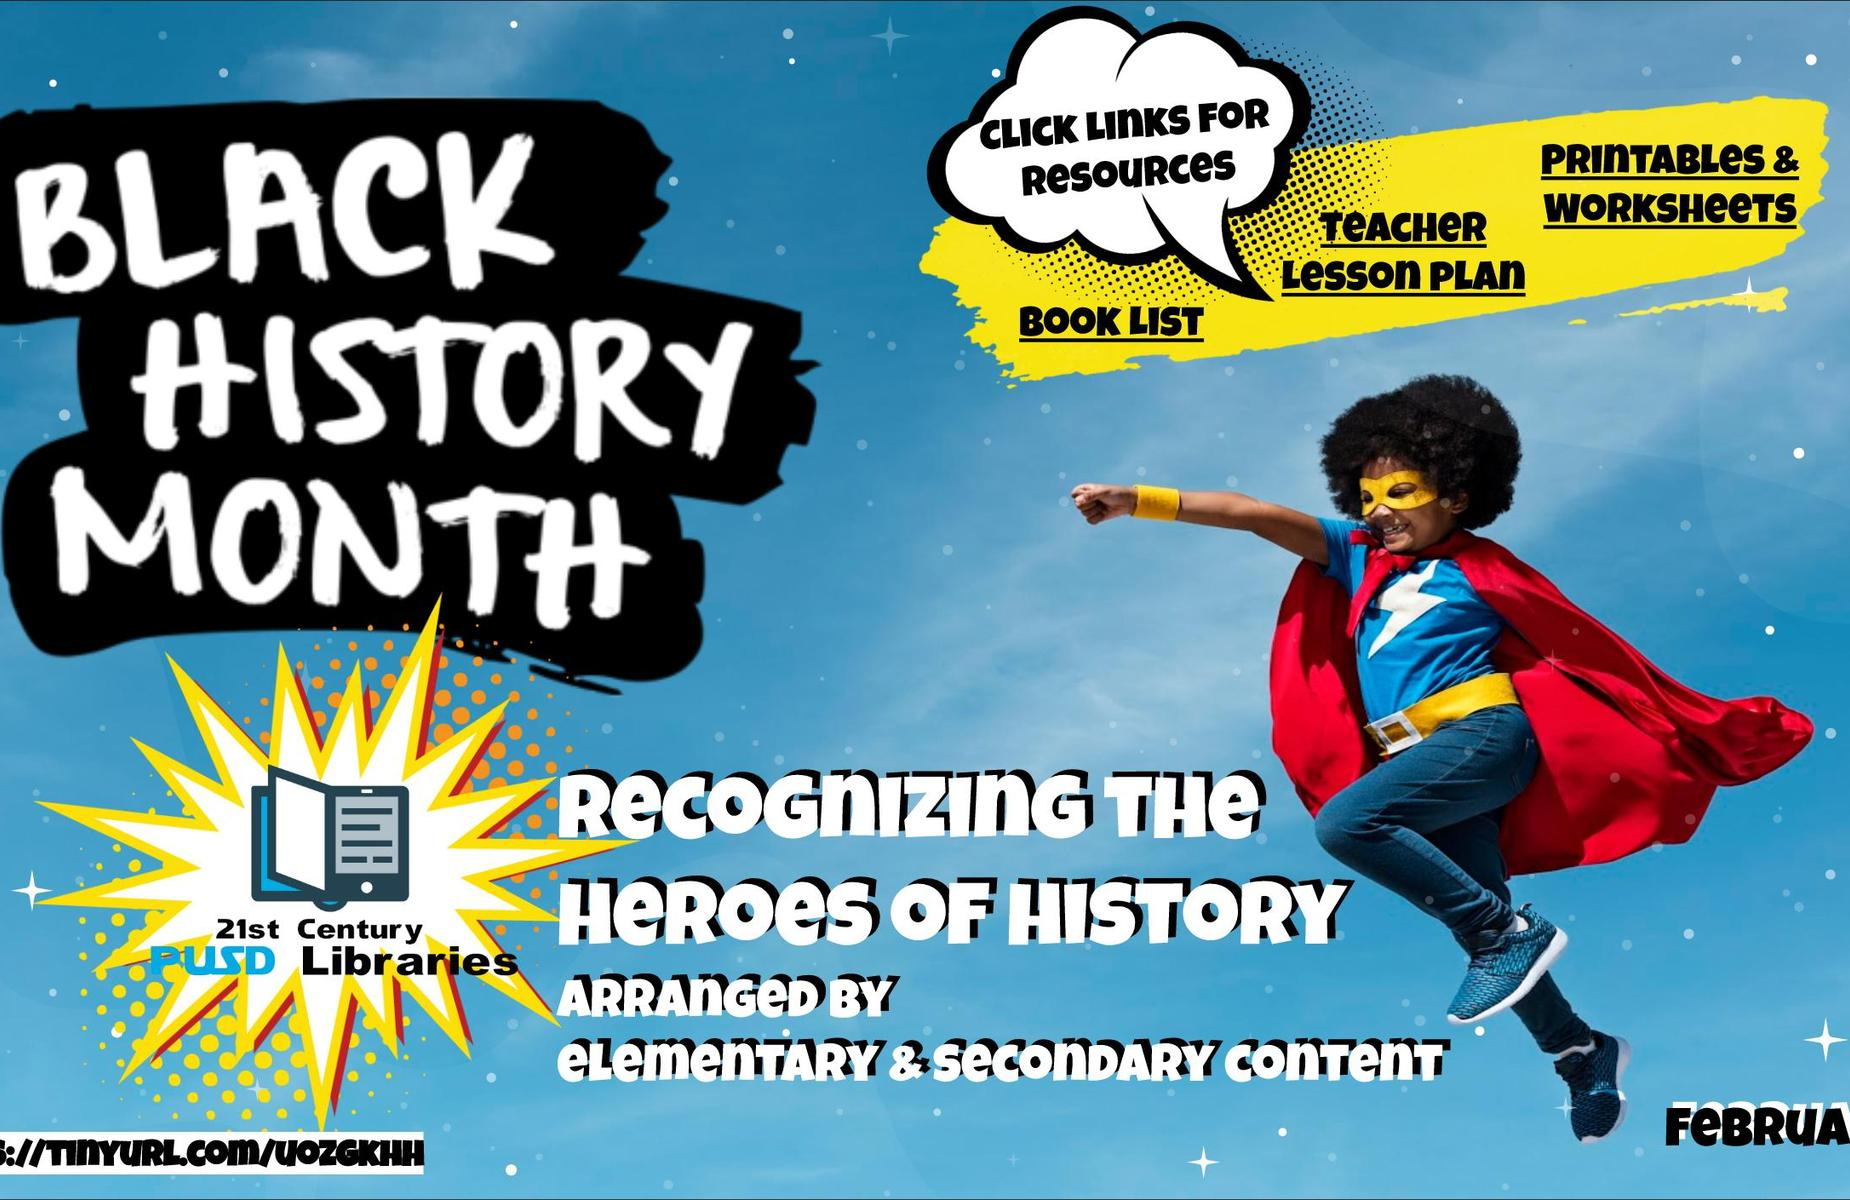 click image for Black history month resources